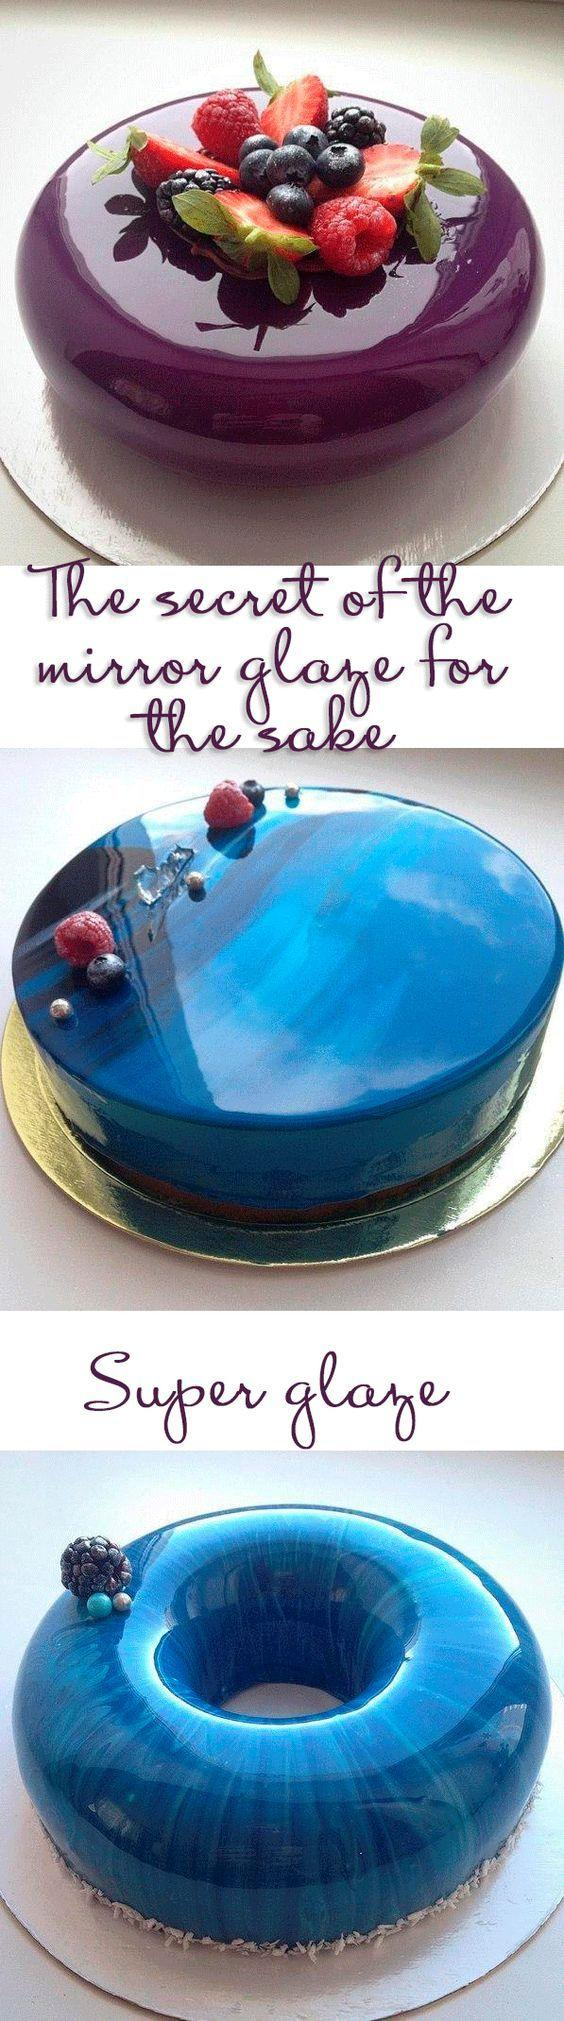 Свадьба - The Secret Of The Mirror Glaze For The Cake